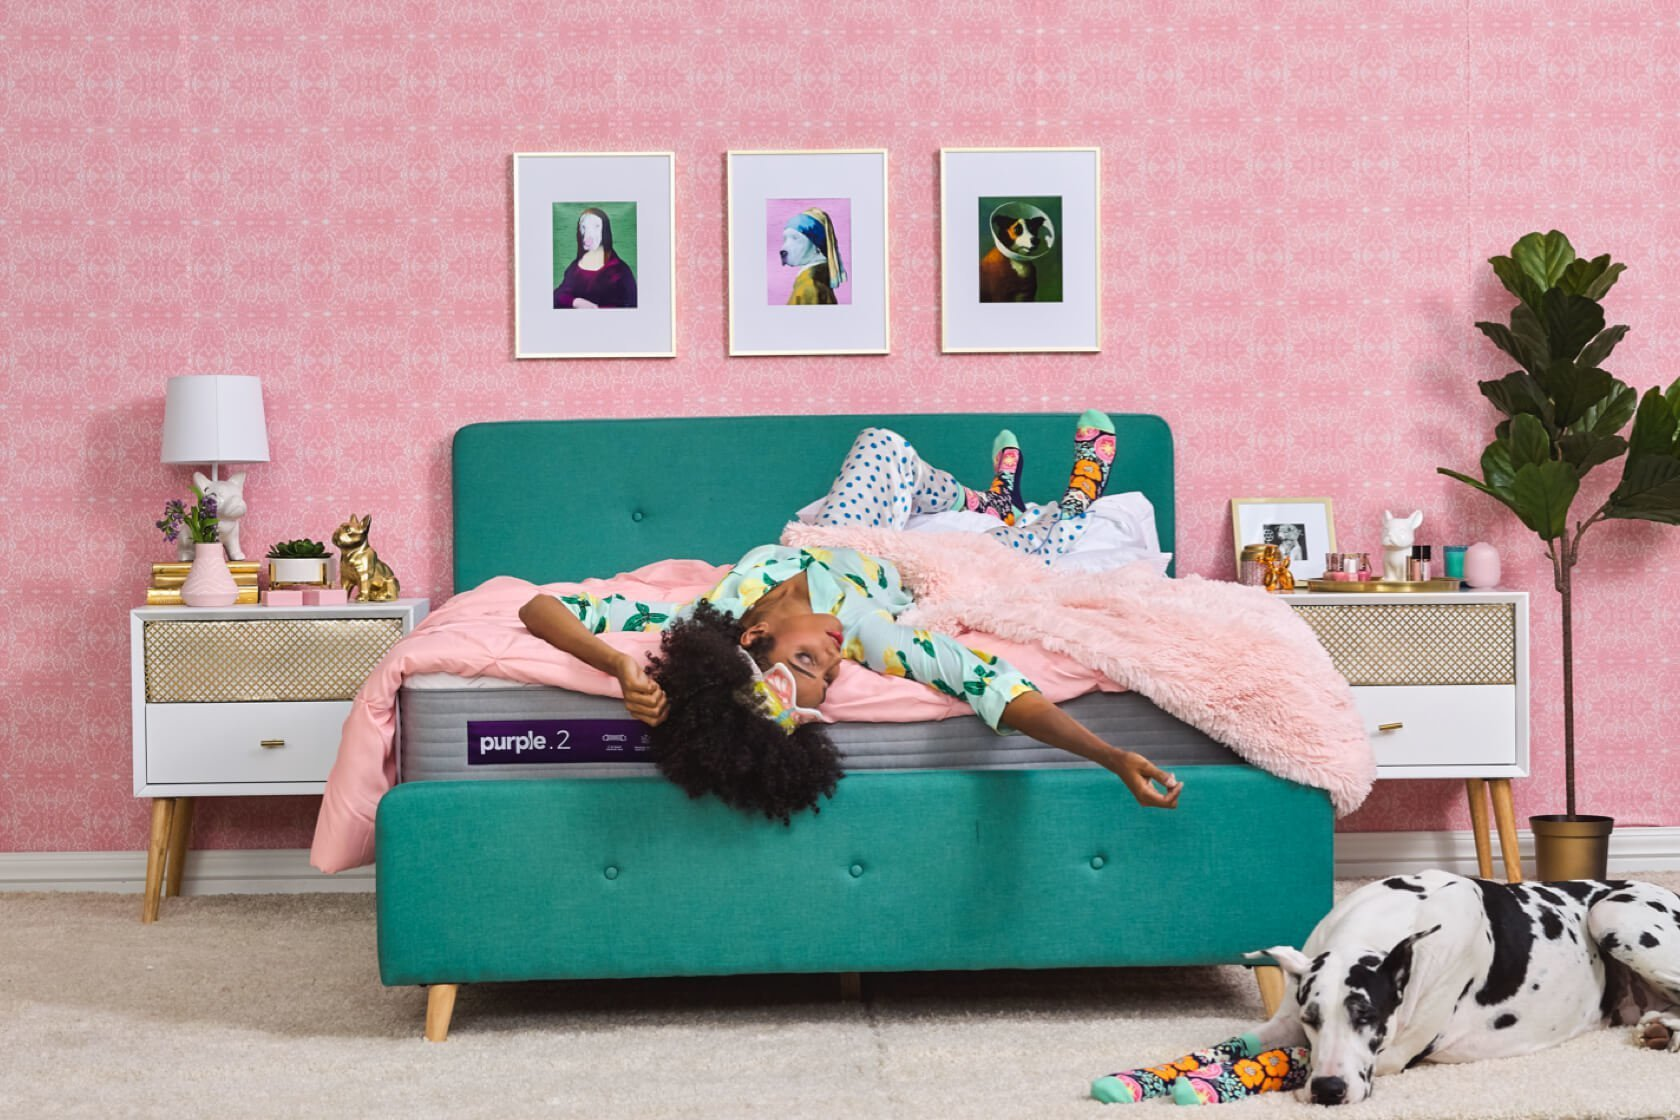 Pink Bedroom Sleeping Lifestyle image